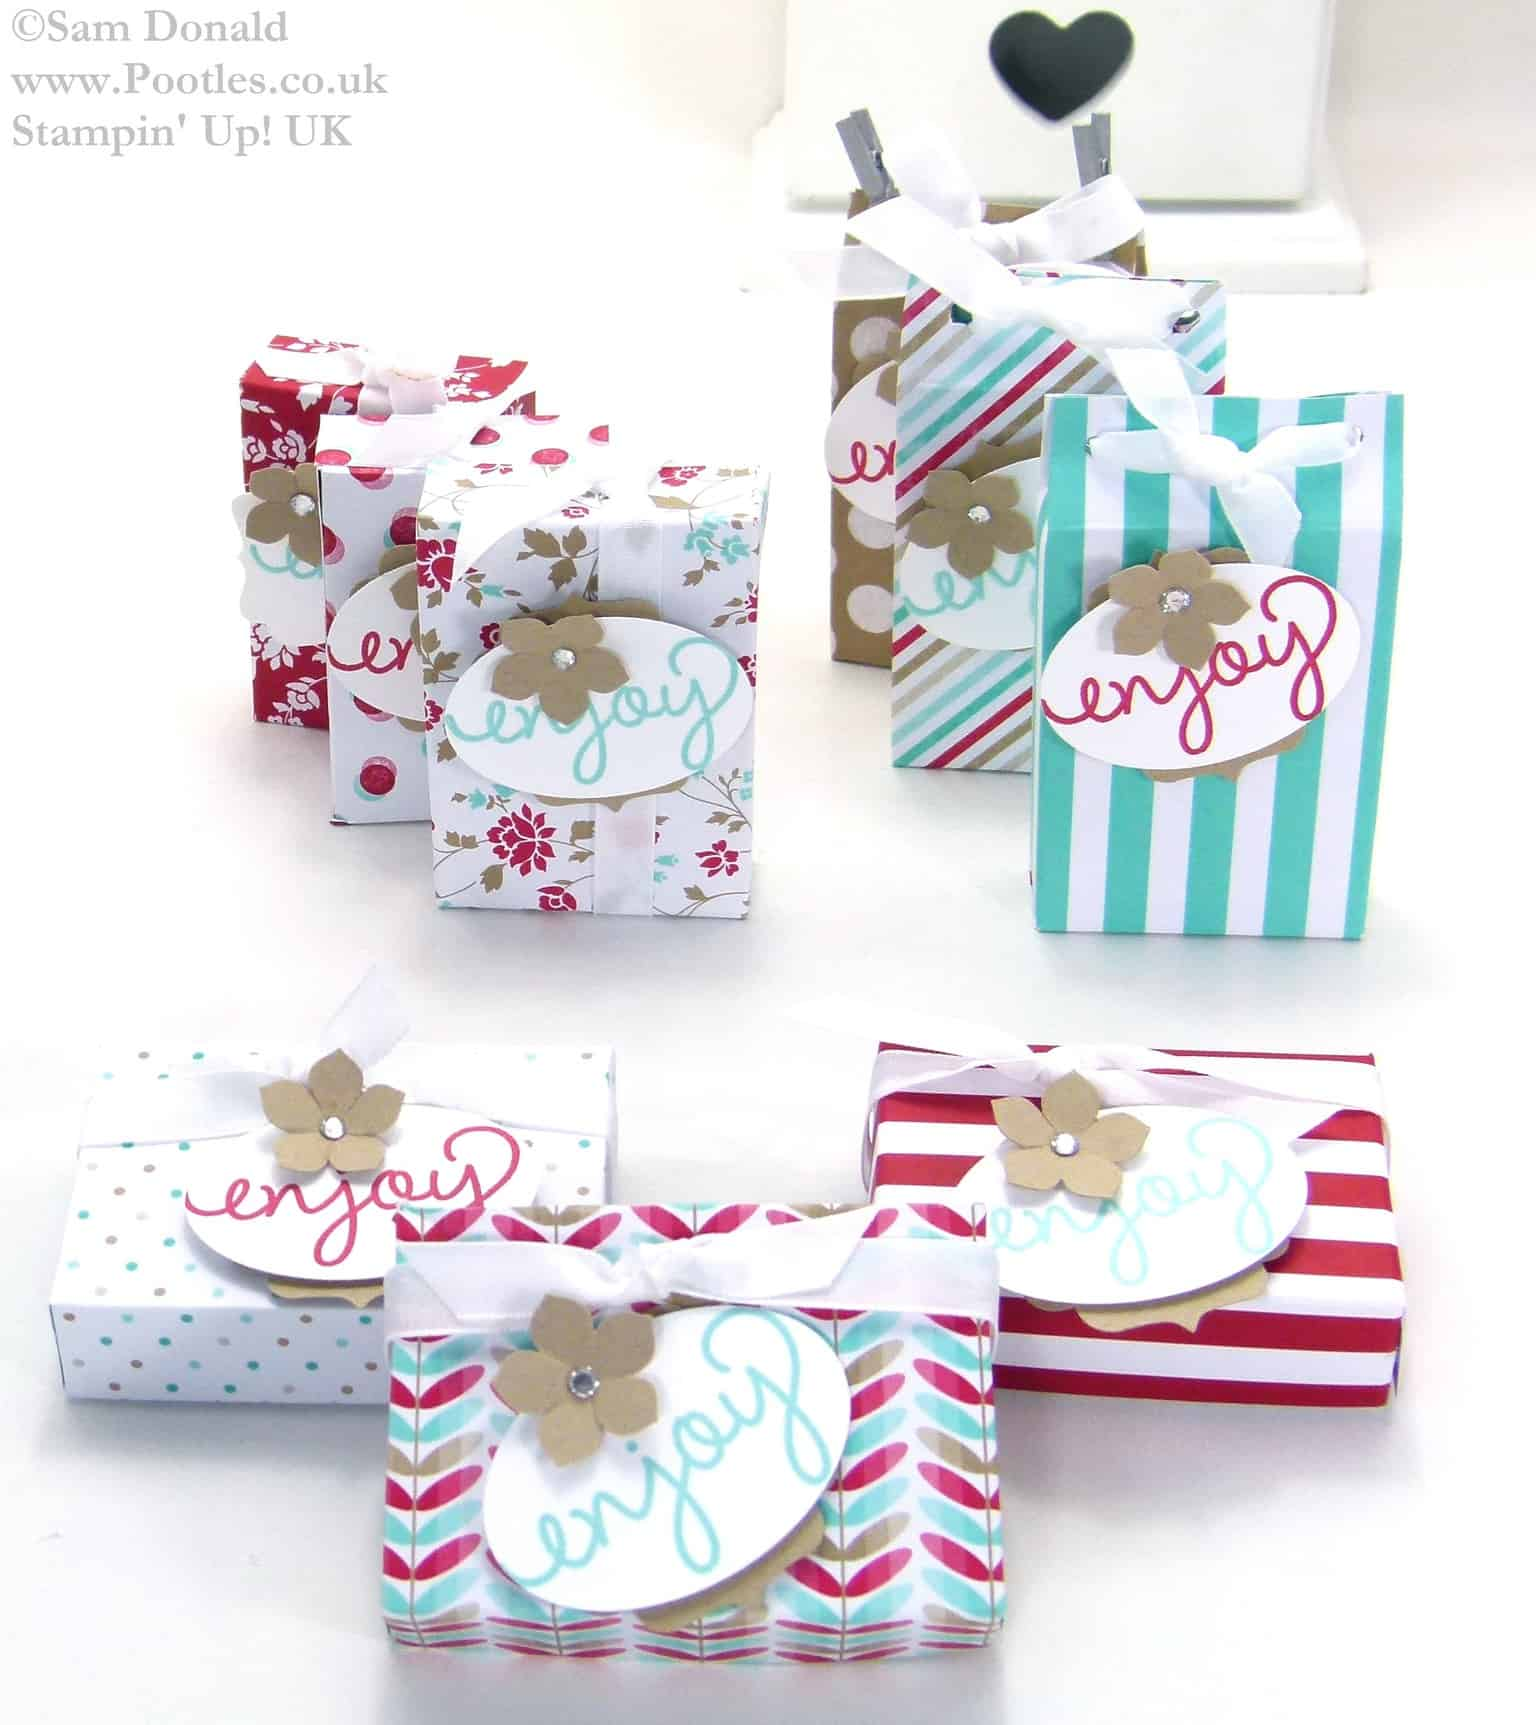 POOTLES Stampin Up UK SPRINGWATCH 1 Set of Measurements 3 Different Boxes